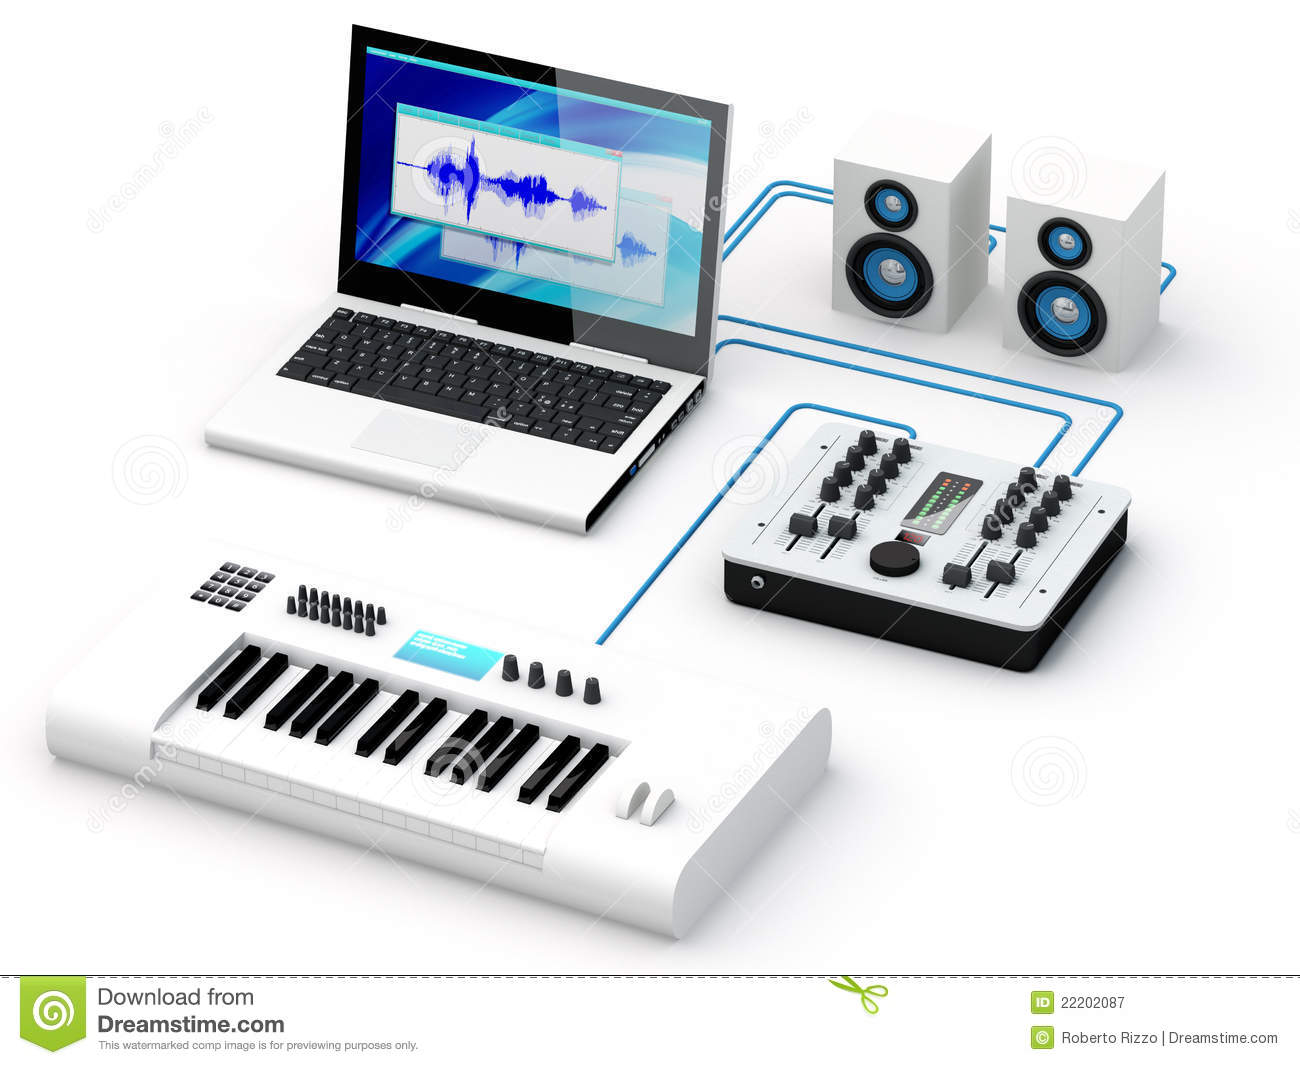 Tremendous Home Studio Equipment Gallery Largest Home Design Picture Inspirations Pitcheantrous